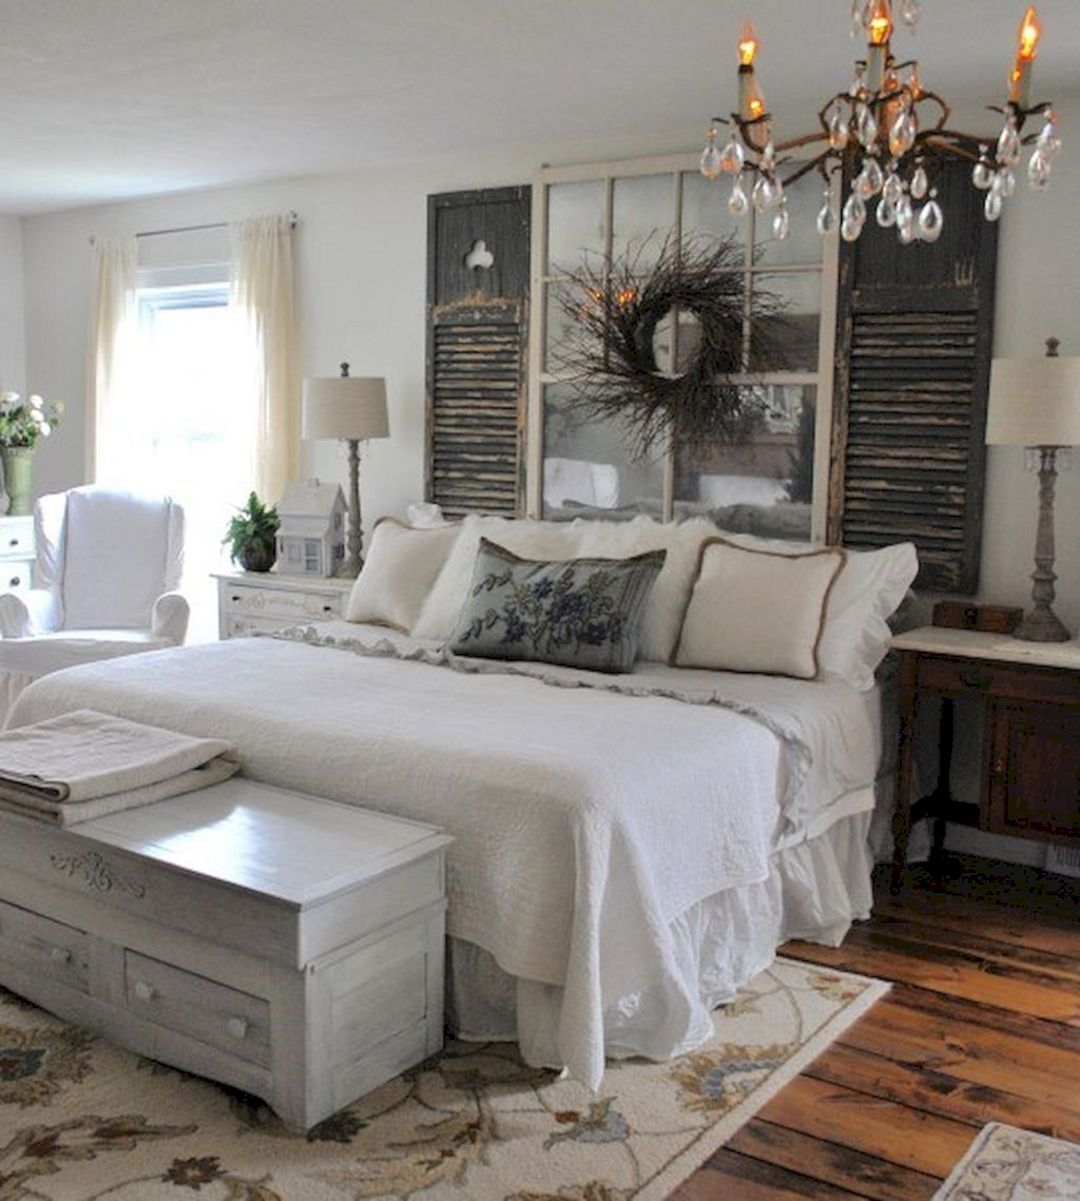 Top 10 Incredible Rustic Farmhouse Style Master Bedroom Ideas With Images Farmhouse Style Master Bedroom Remodel Bedroom Rustic Farmhouse Bedroom